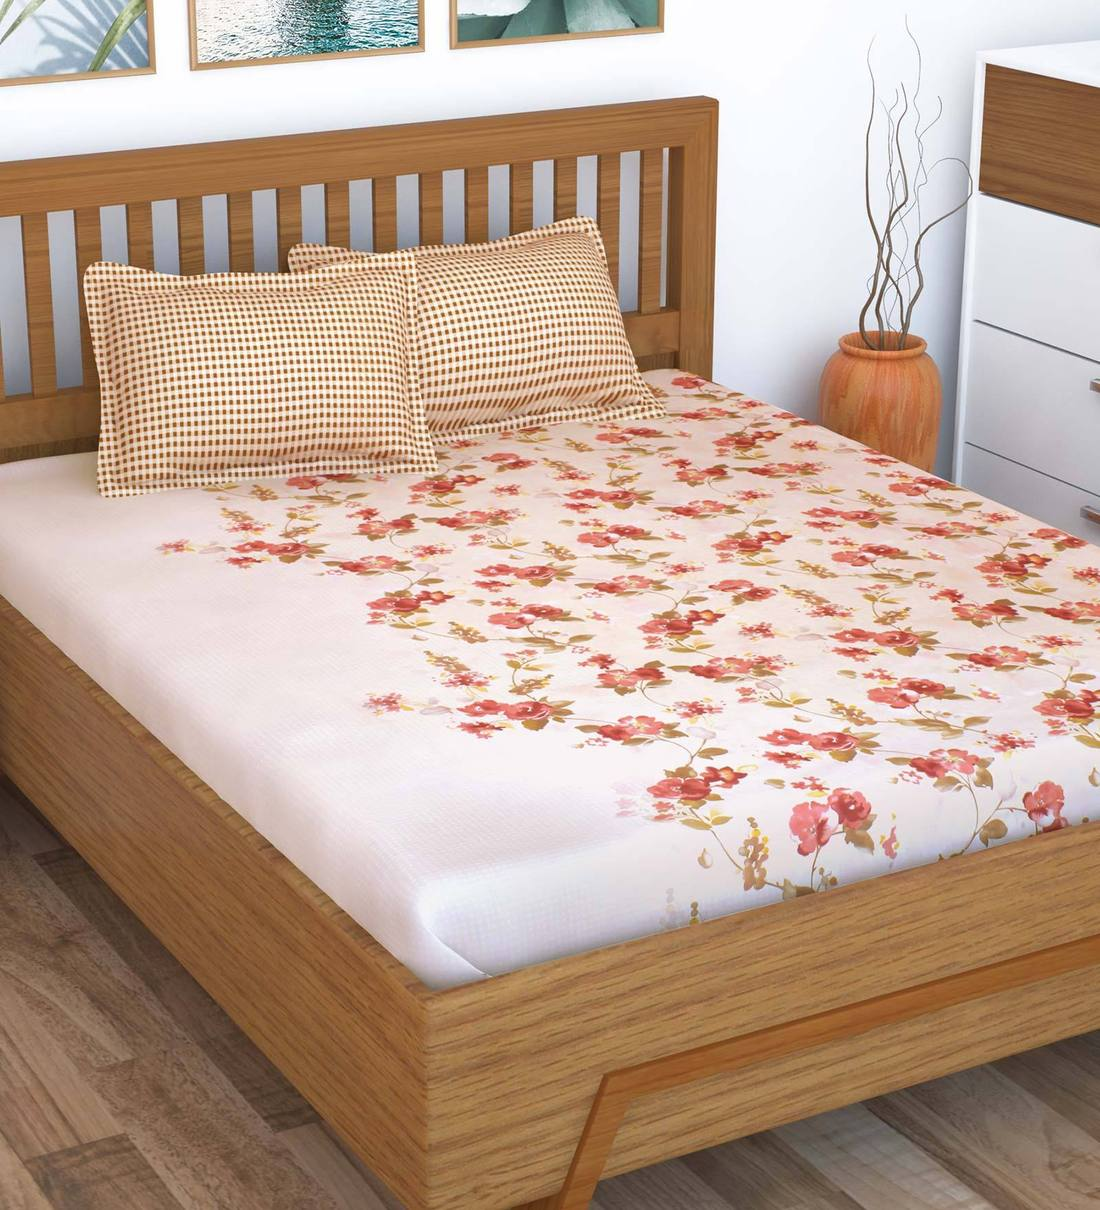 Buy Myra 100 Cotton 186tc Double Bedsheet With 2 Pillow Cover By Story Home Online Floral Double Bed Sheets Bed Sheets Furnishings Pepperfry Product